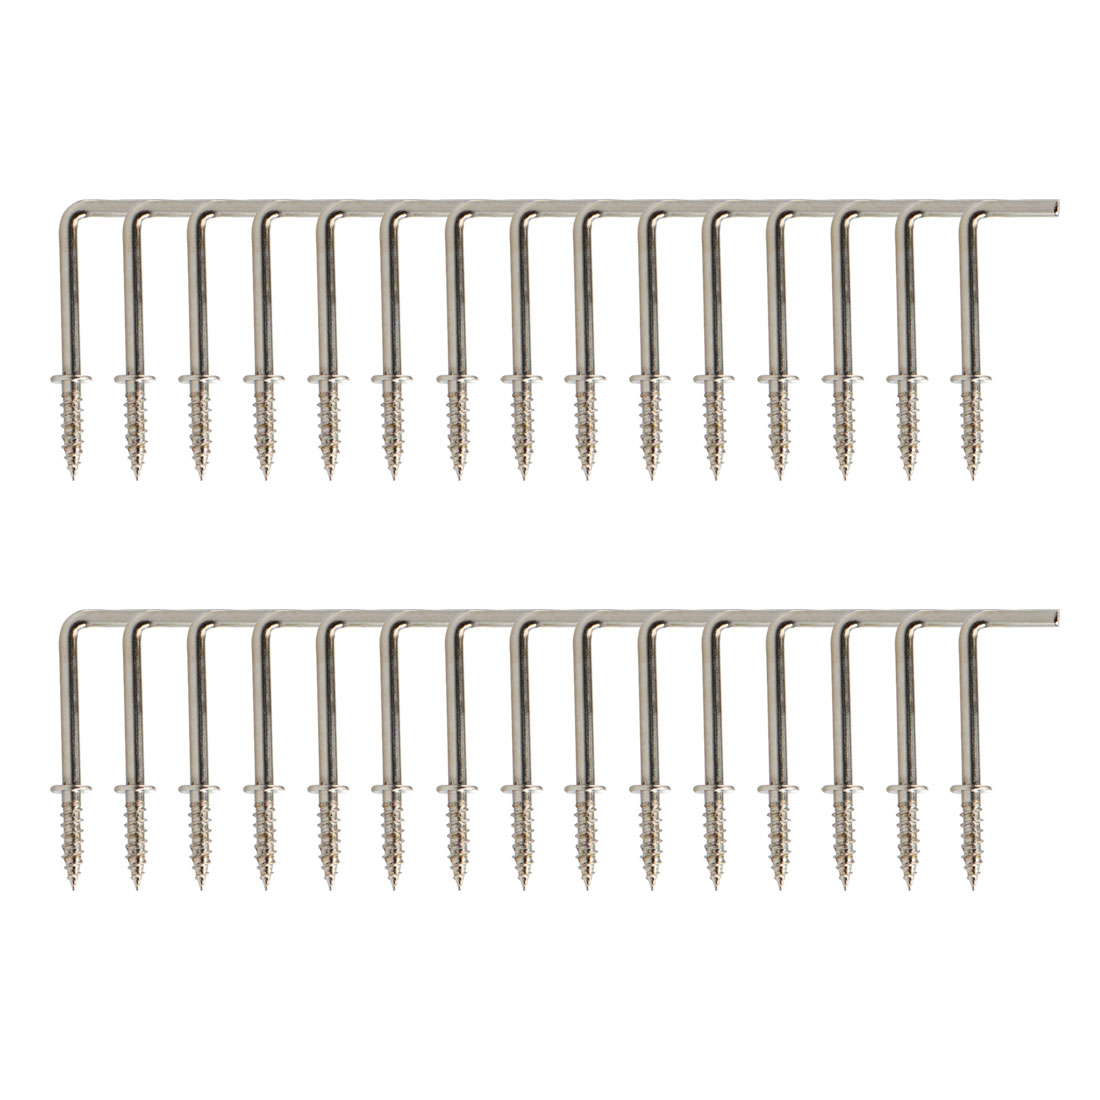 30pcs Cup Square Hook 1 Inch Nickel Plating Coated Hanger Holder Silver Gray